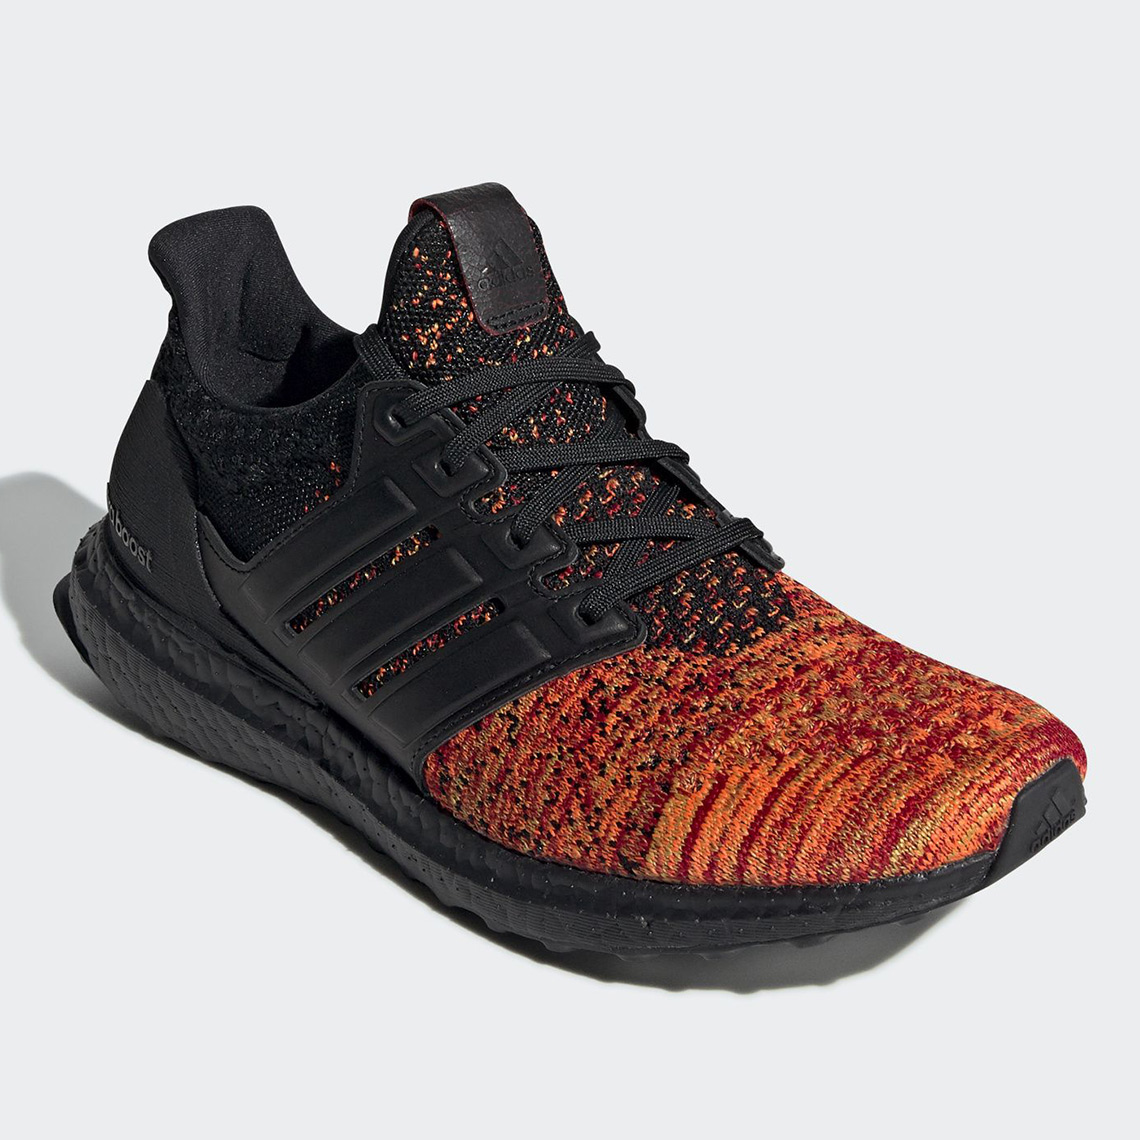 e169f81e2ad Game Of Thrones adidas Shoes - Full Photos And Release Info ...